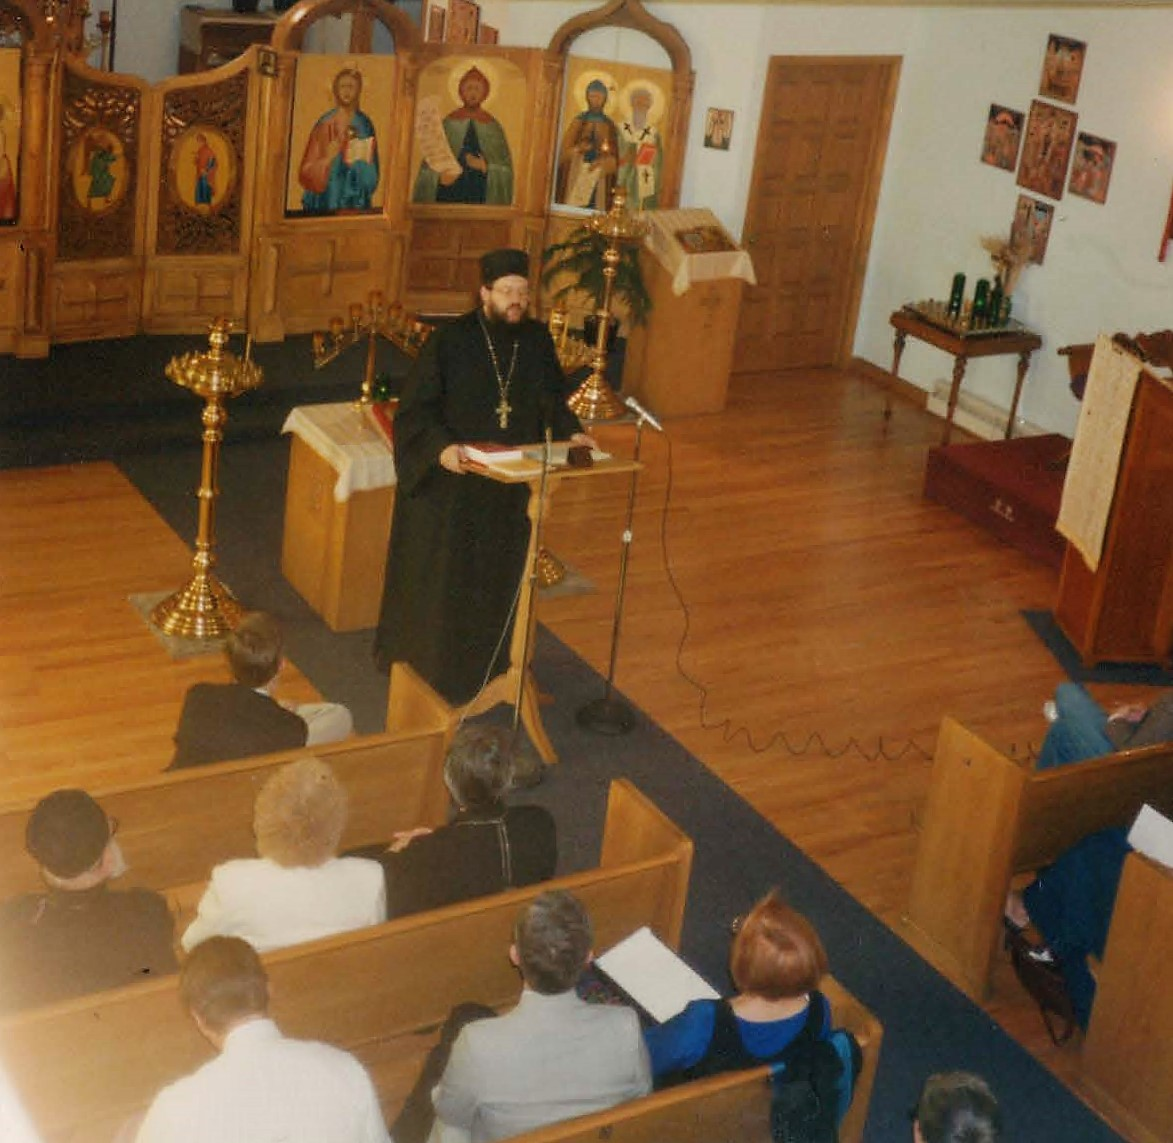 Fr. Alexander (now Bishop Alexander) speaking at a conference at Ss. Cyril and Methodius